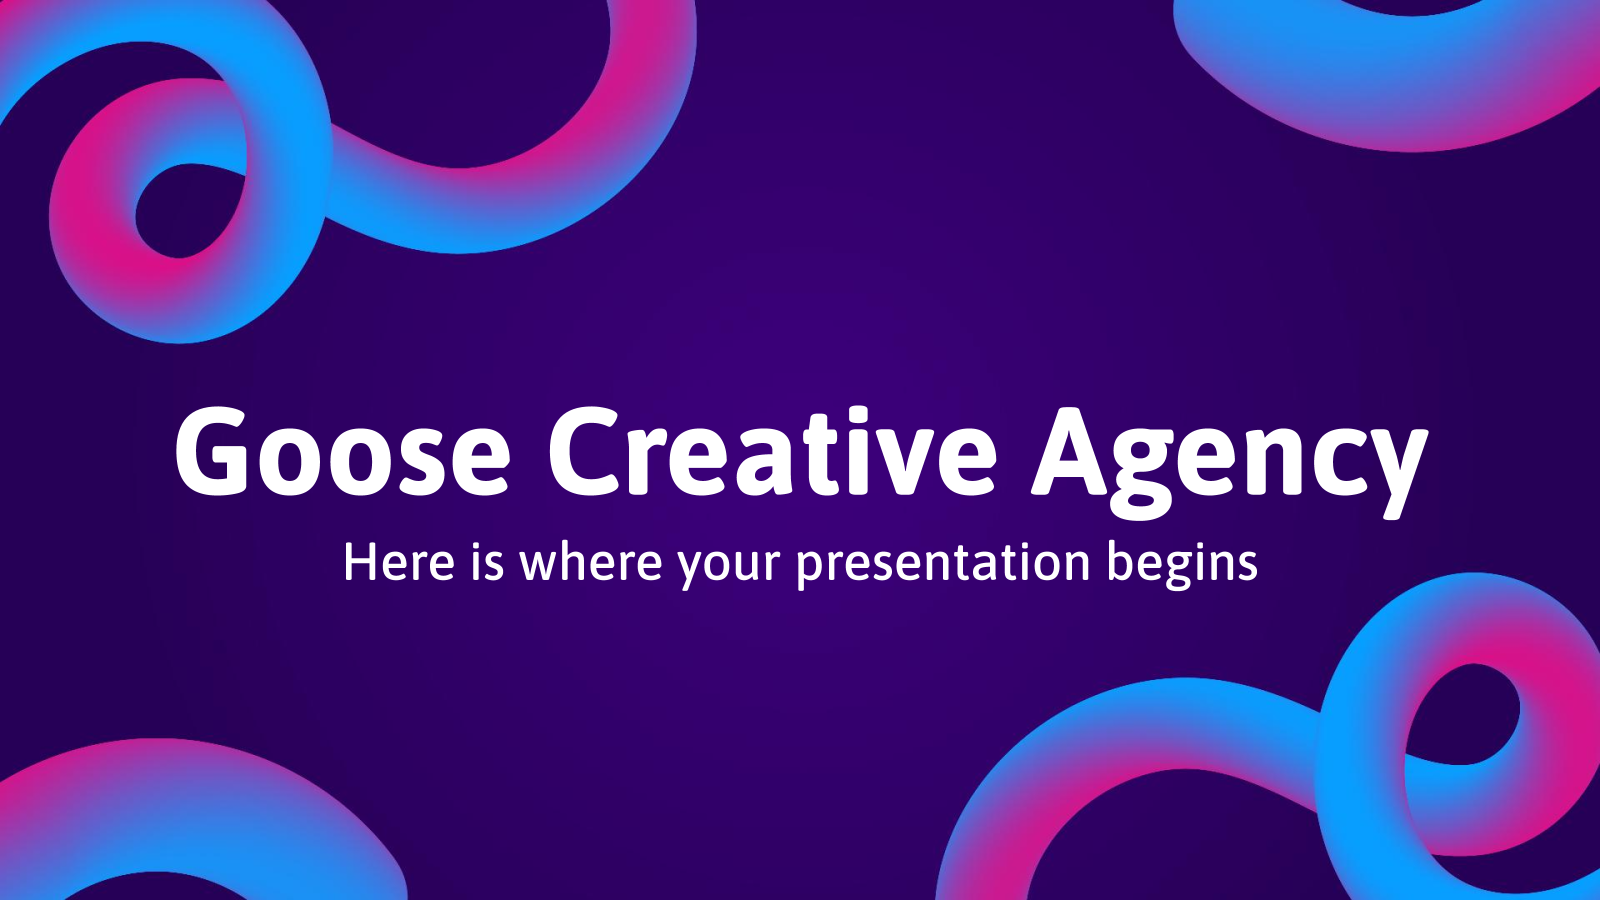 Goose Creative Agency presentation template